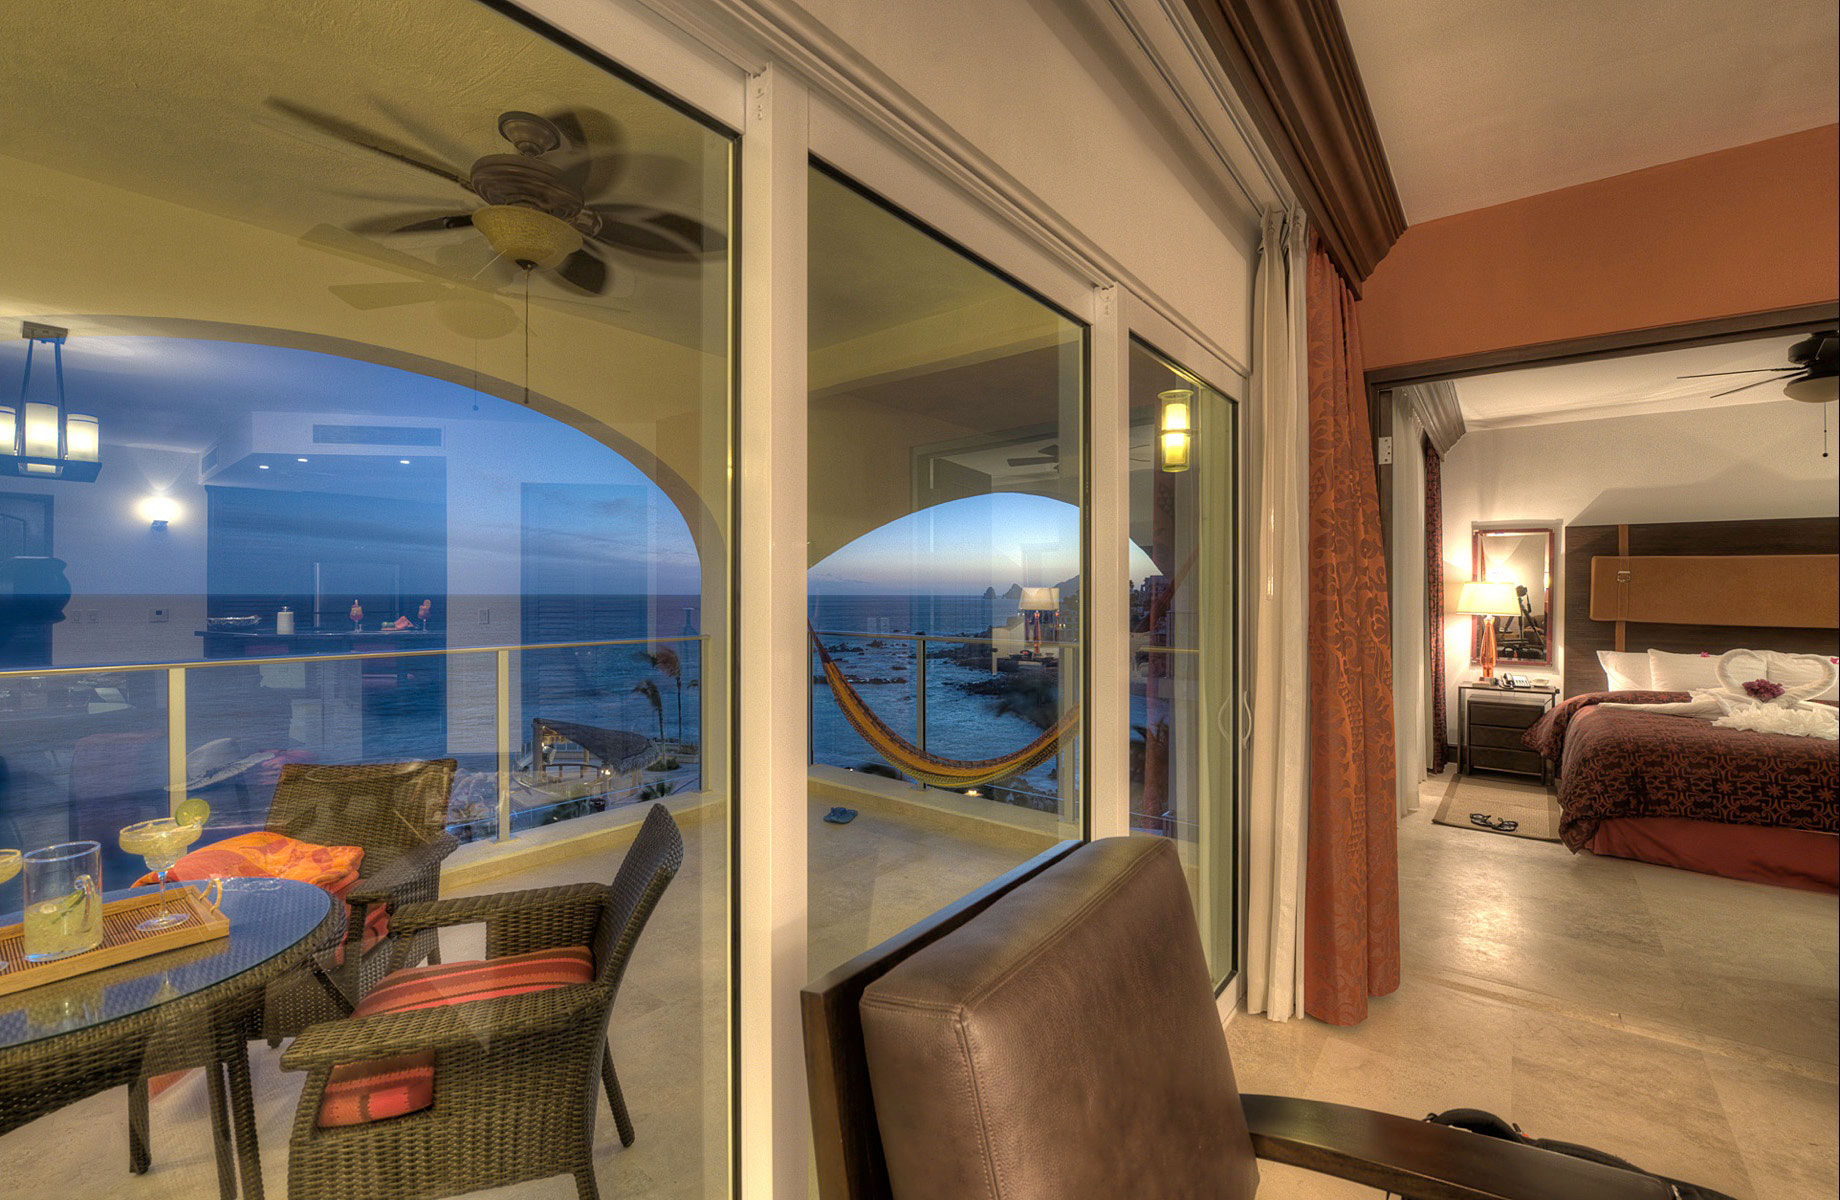 View - Increasing Real Estate Values Through Photography